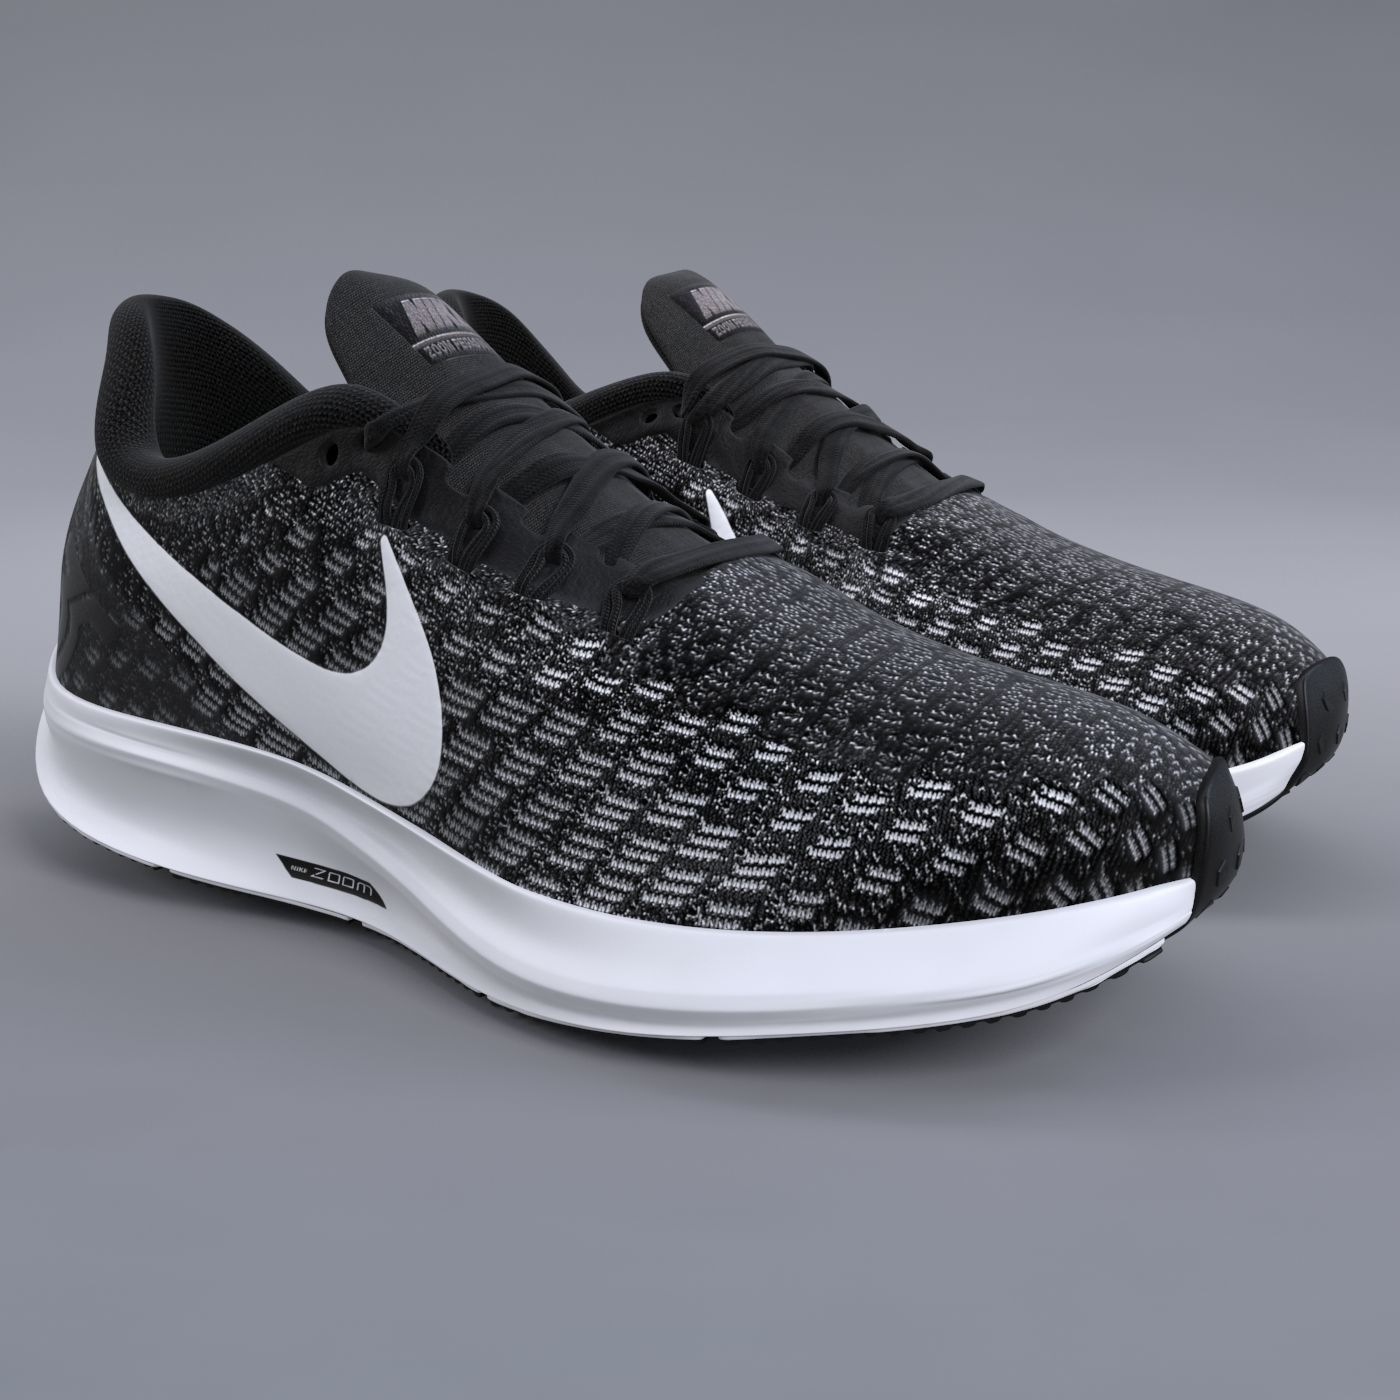 Conception innovante 72f20 9d022 Nike Air Zoom Pegasus 35 PBR | 3D model